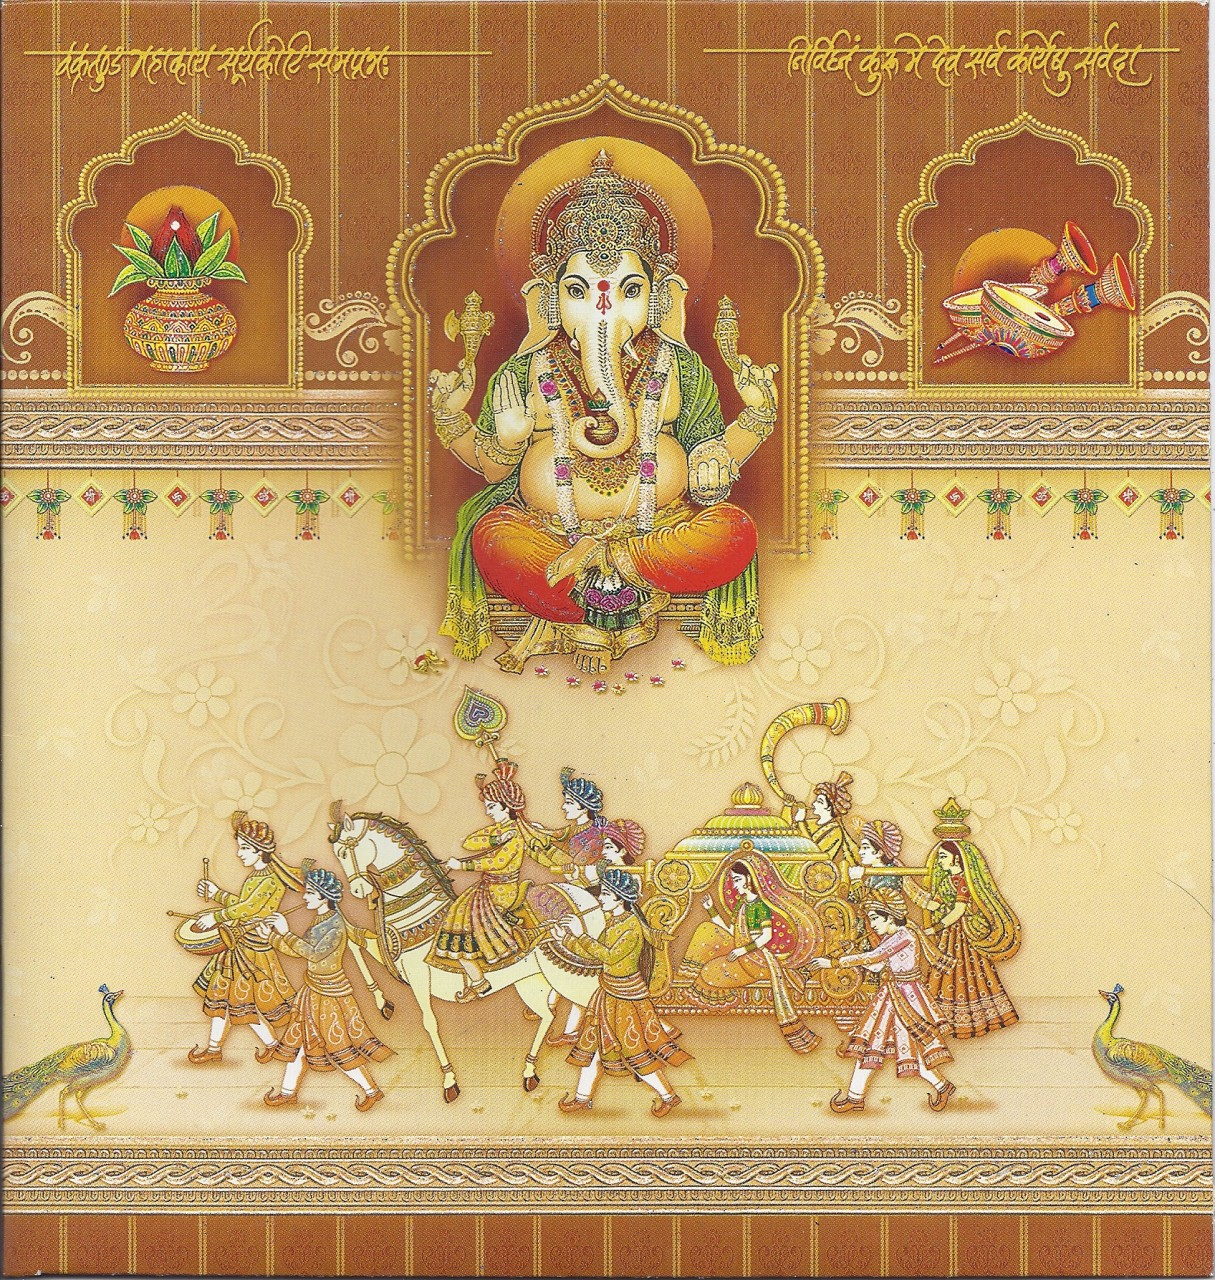 Ganesha Image For Wedding Card | Joy Studio Design Gallery ...